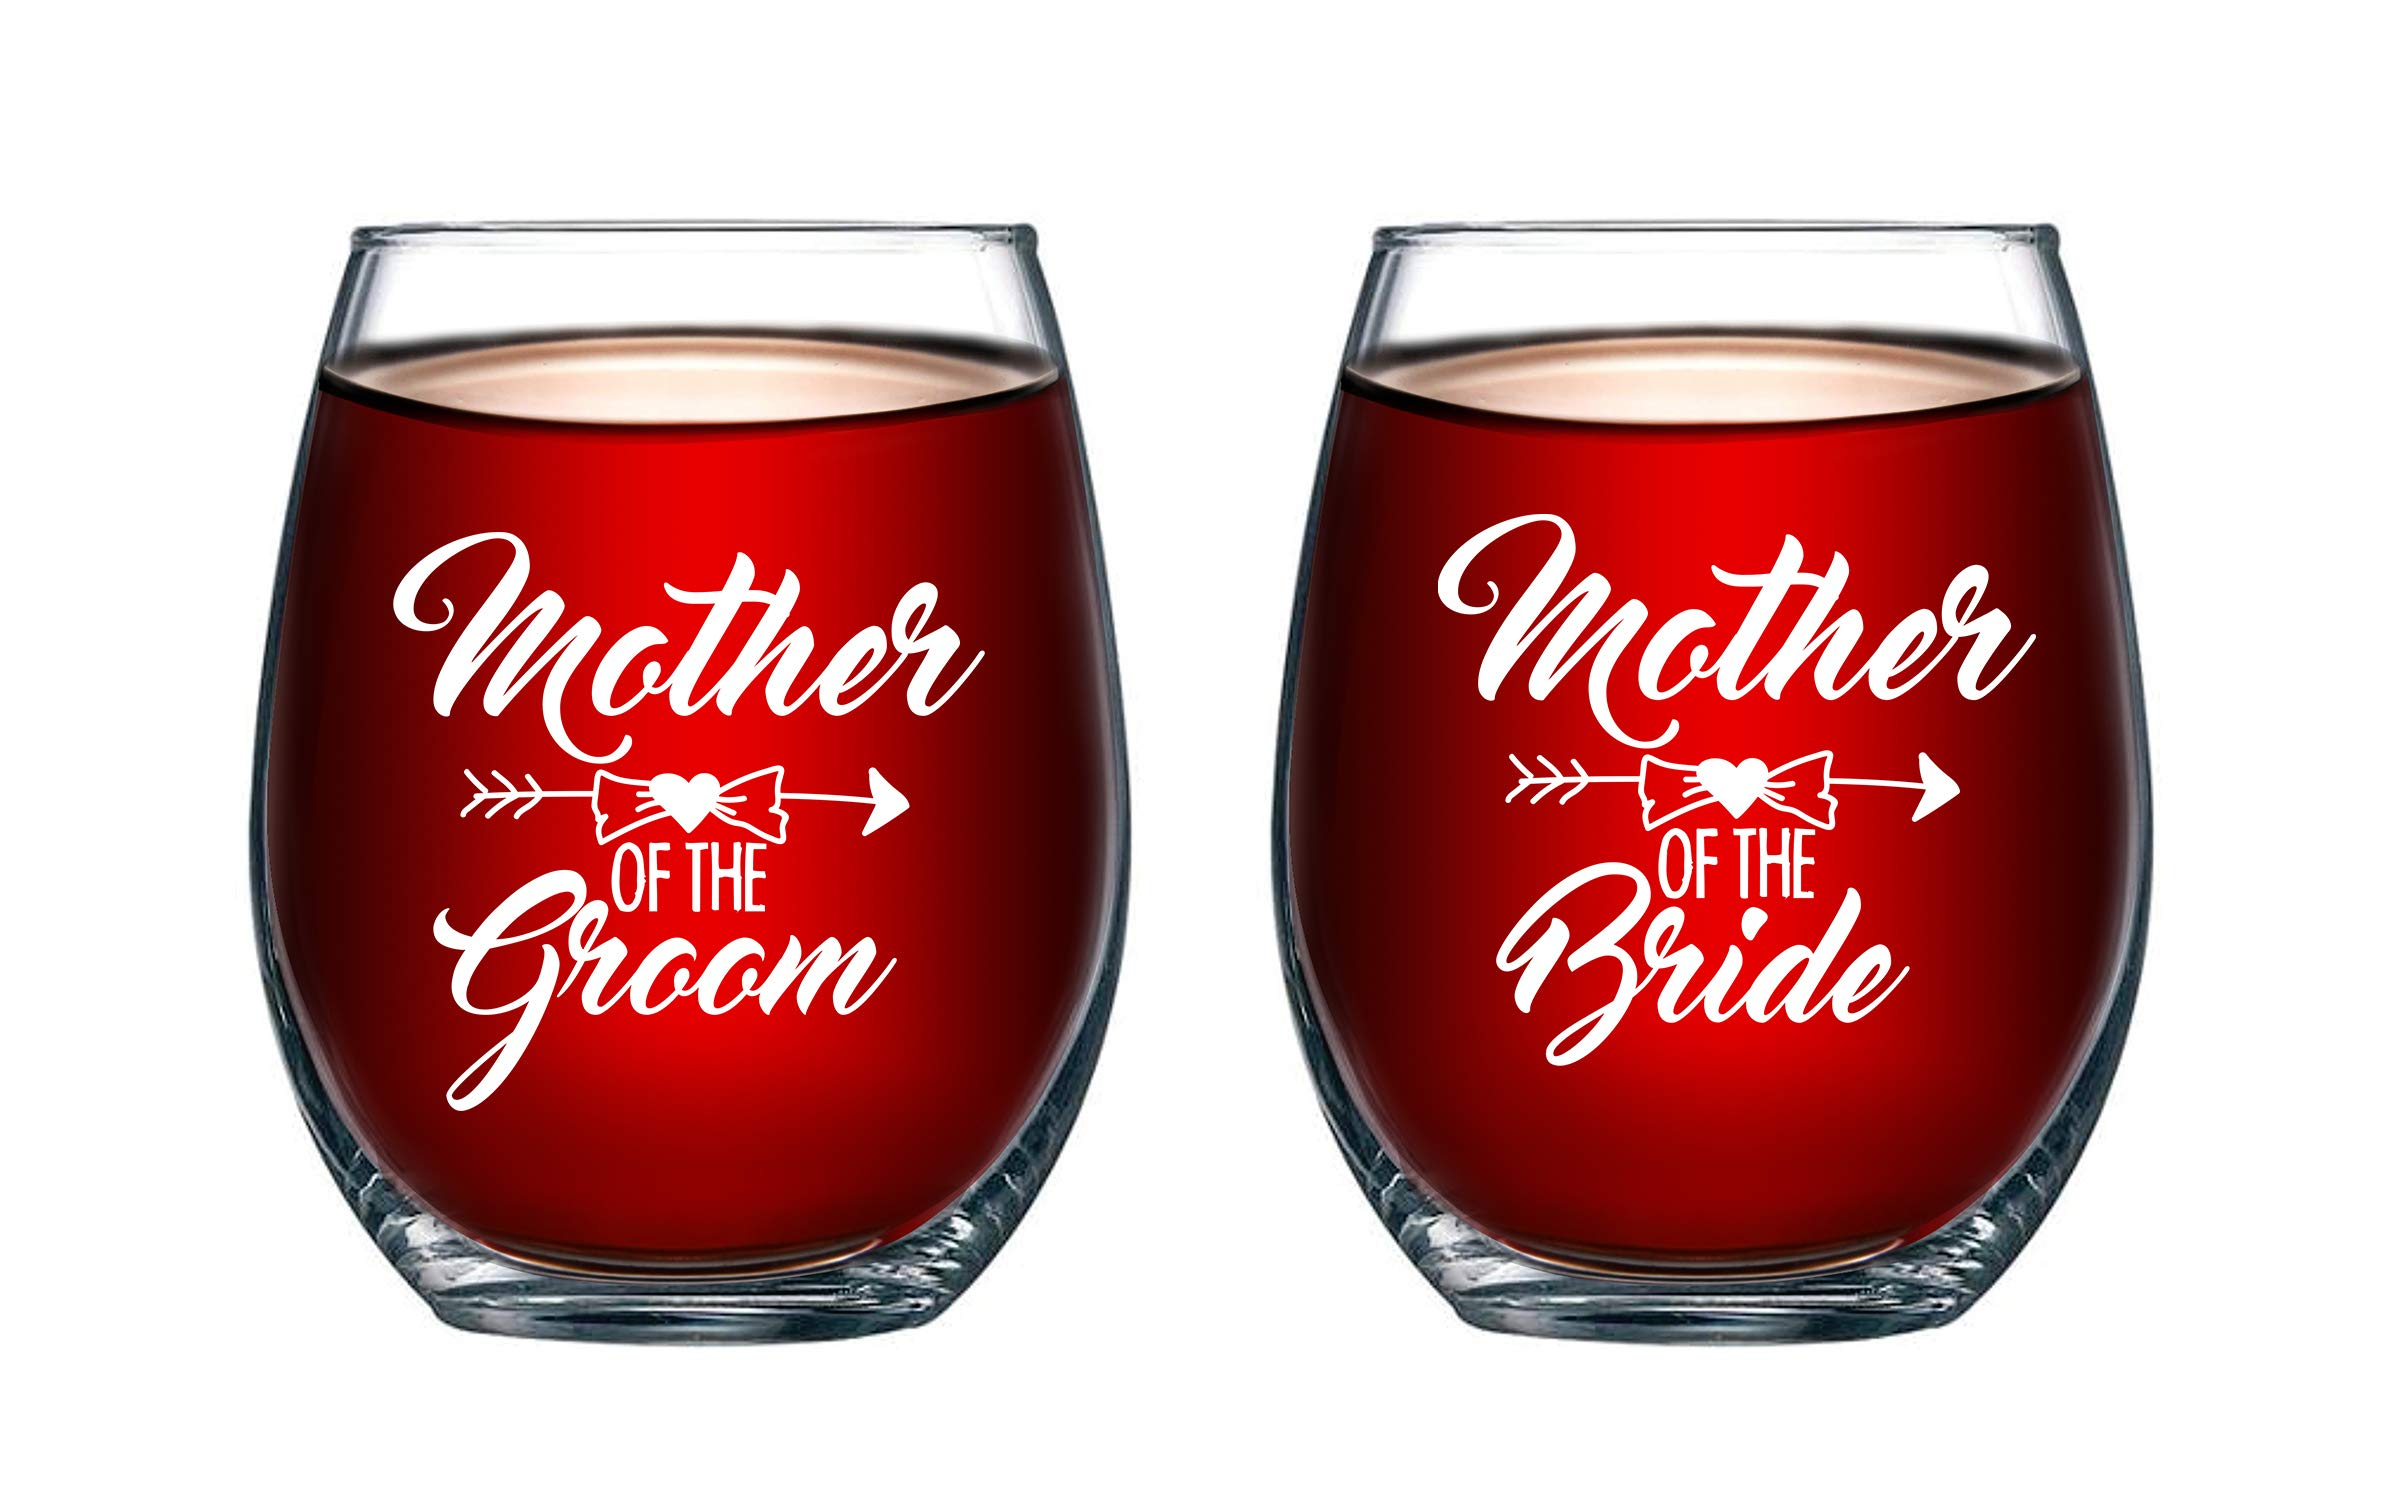 Mother of Bride and Groom 15 oz Stemless Wine Glasses (Set of 2) - Unique Wedding Favor Gifts For Parents - Engagement Gifts For Mother In Law and Brides Mom